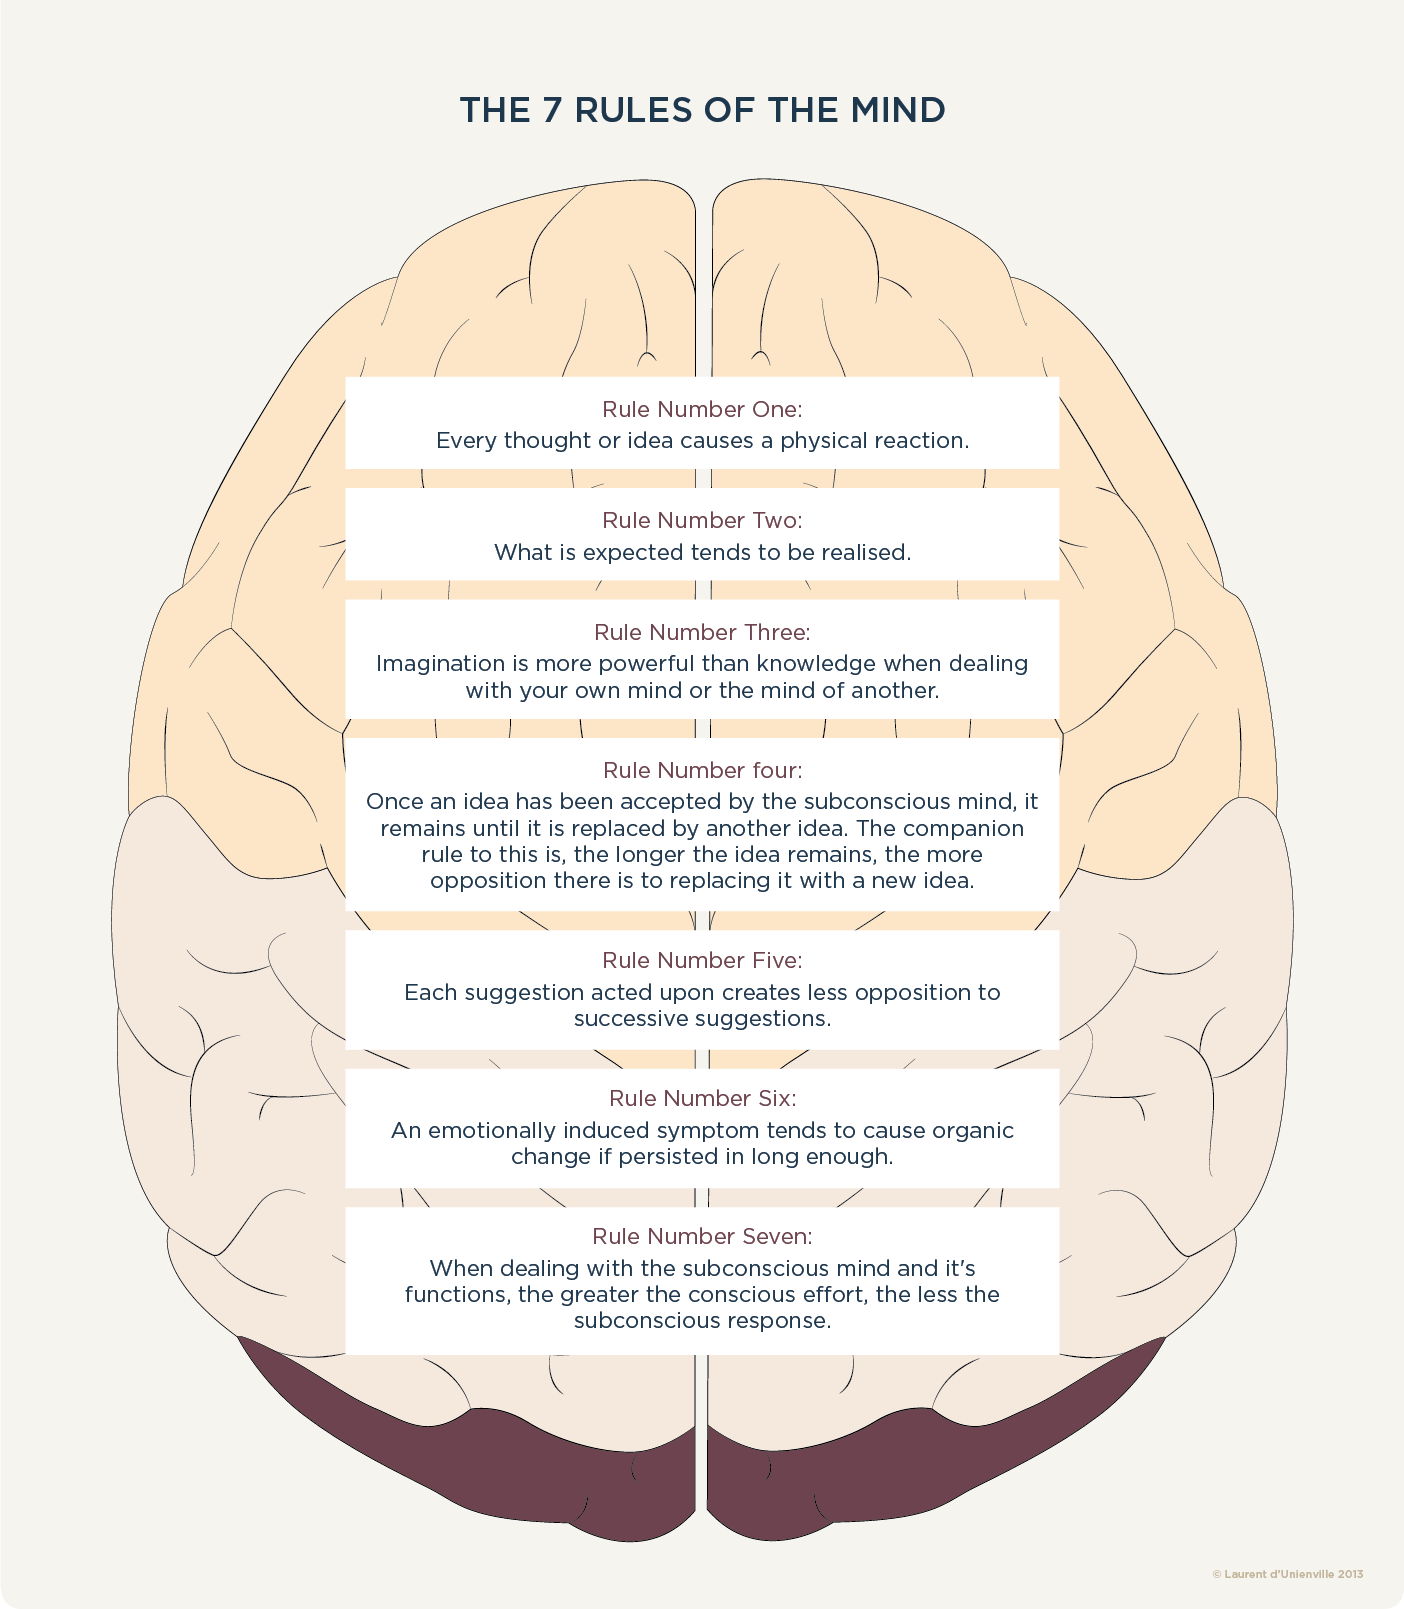 The rules of the mind